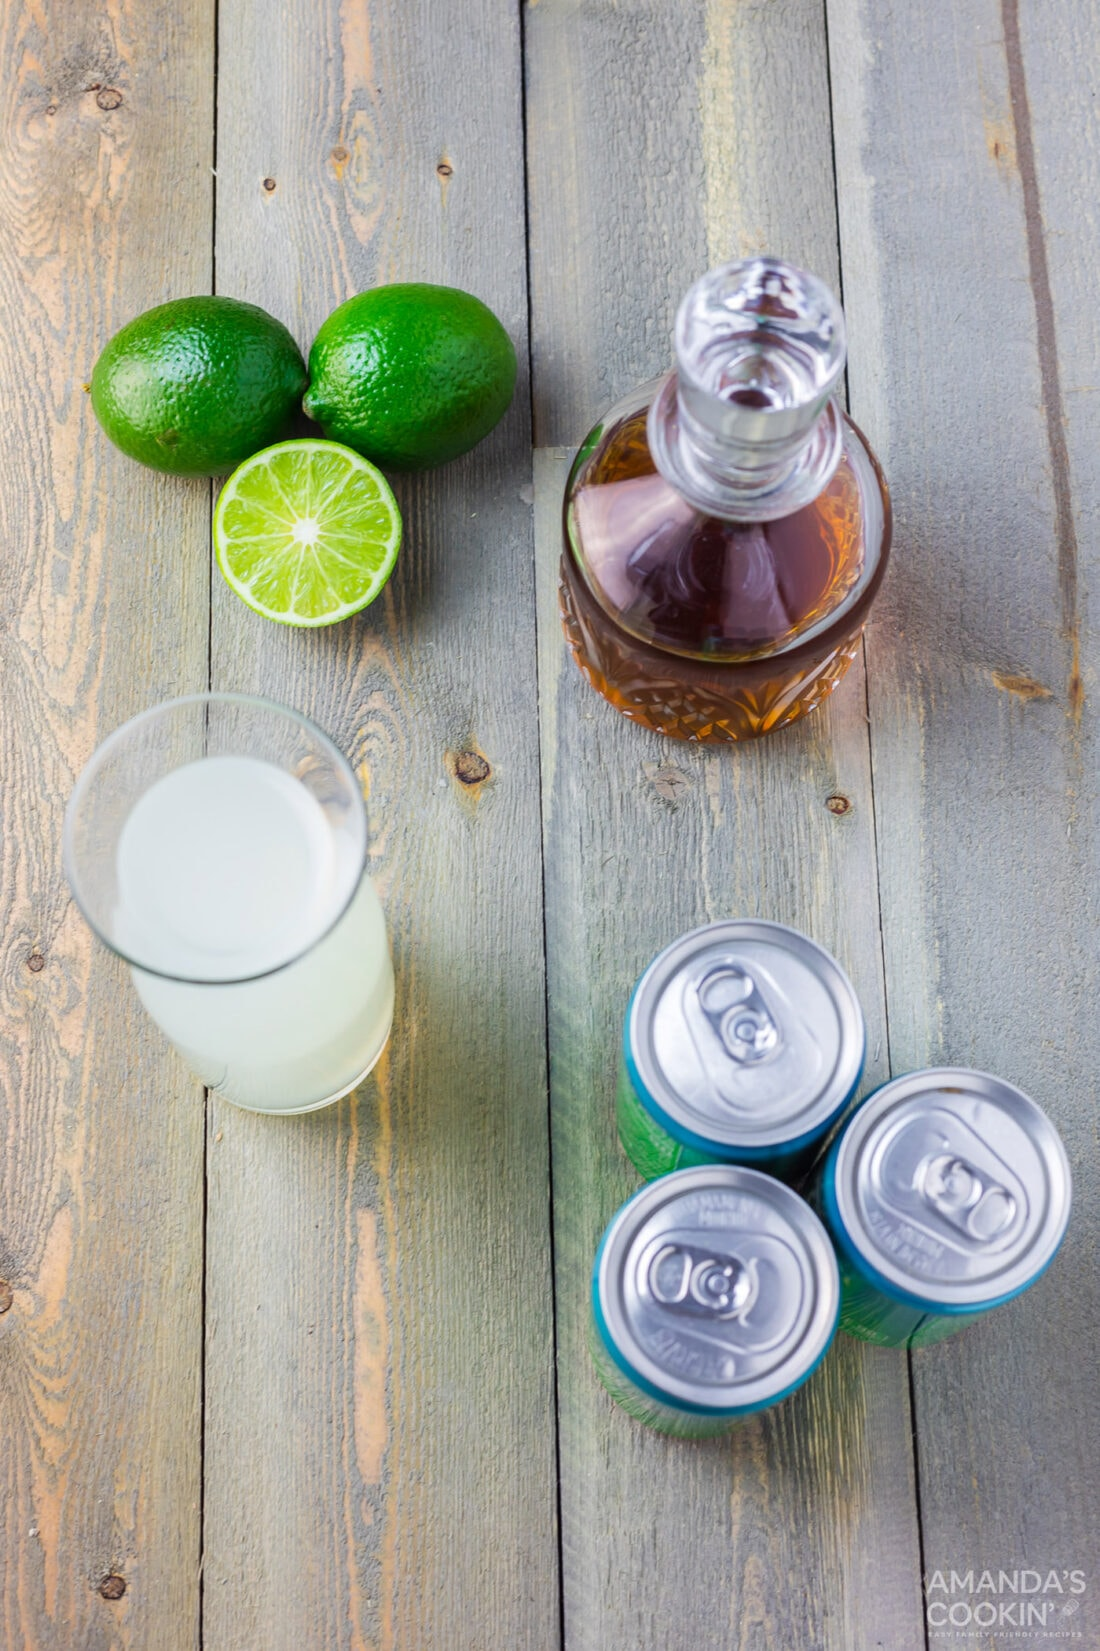 Spiked Limeade ingredients